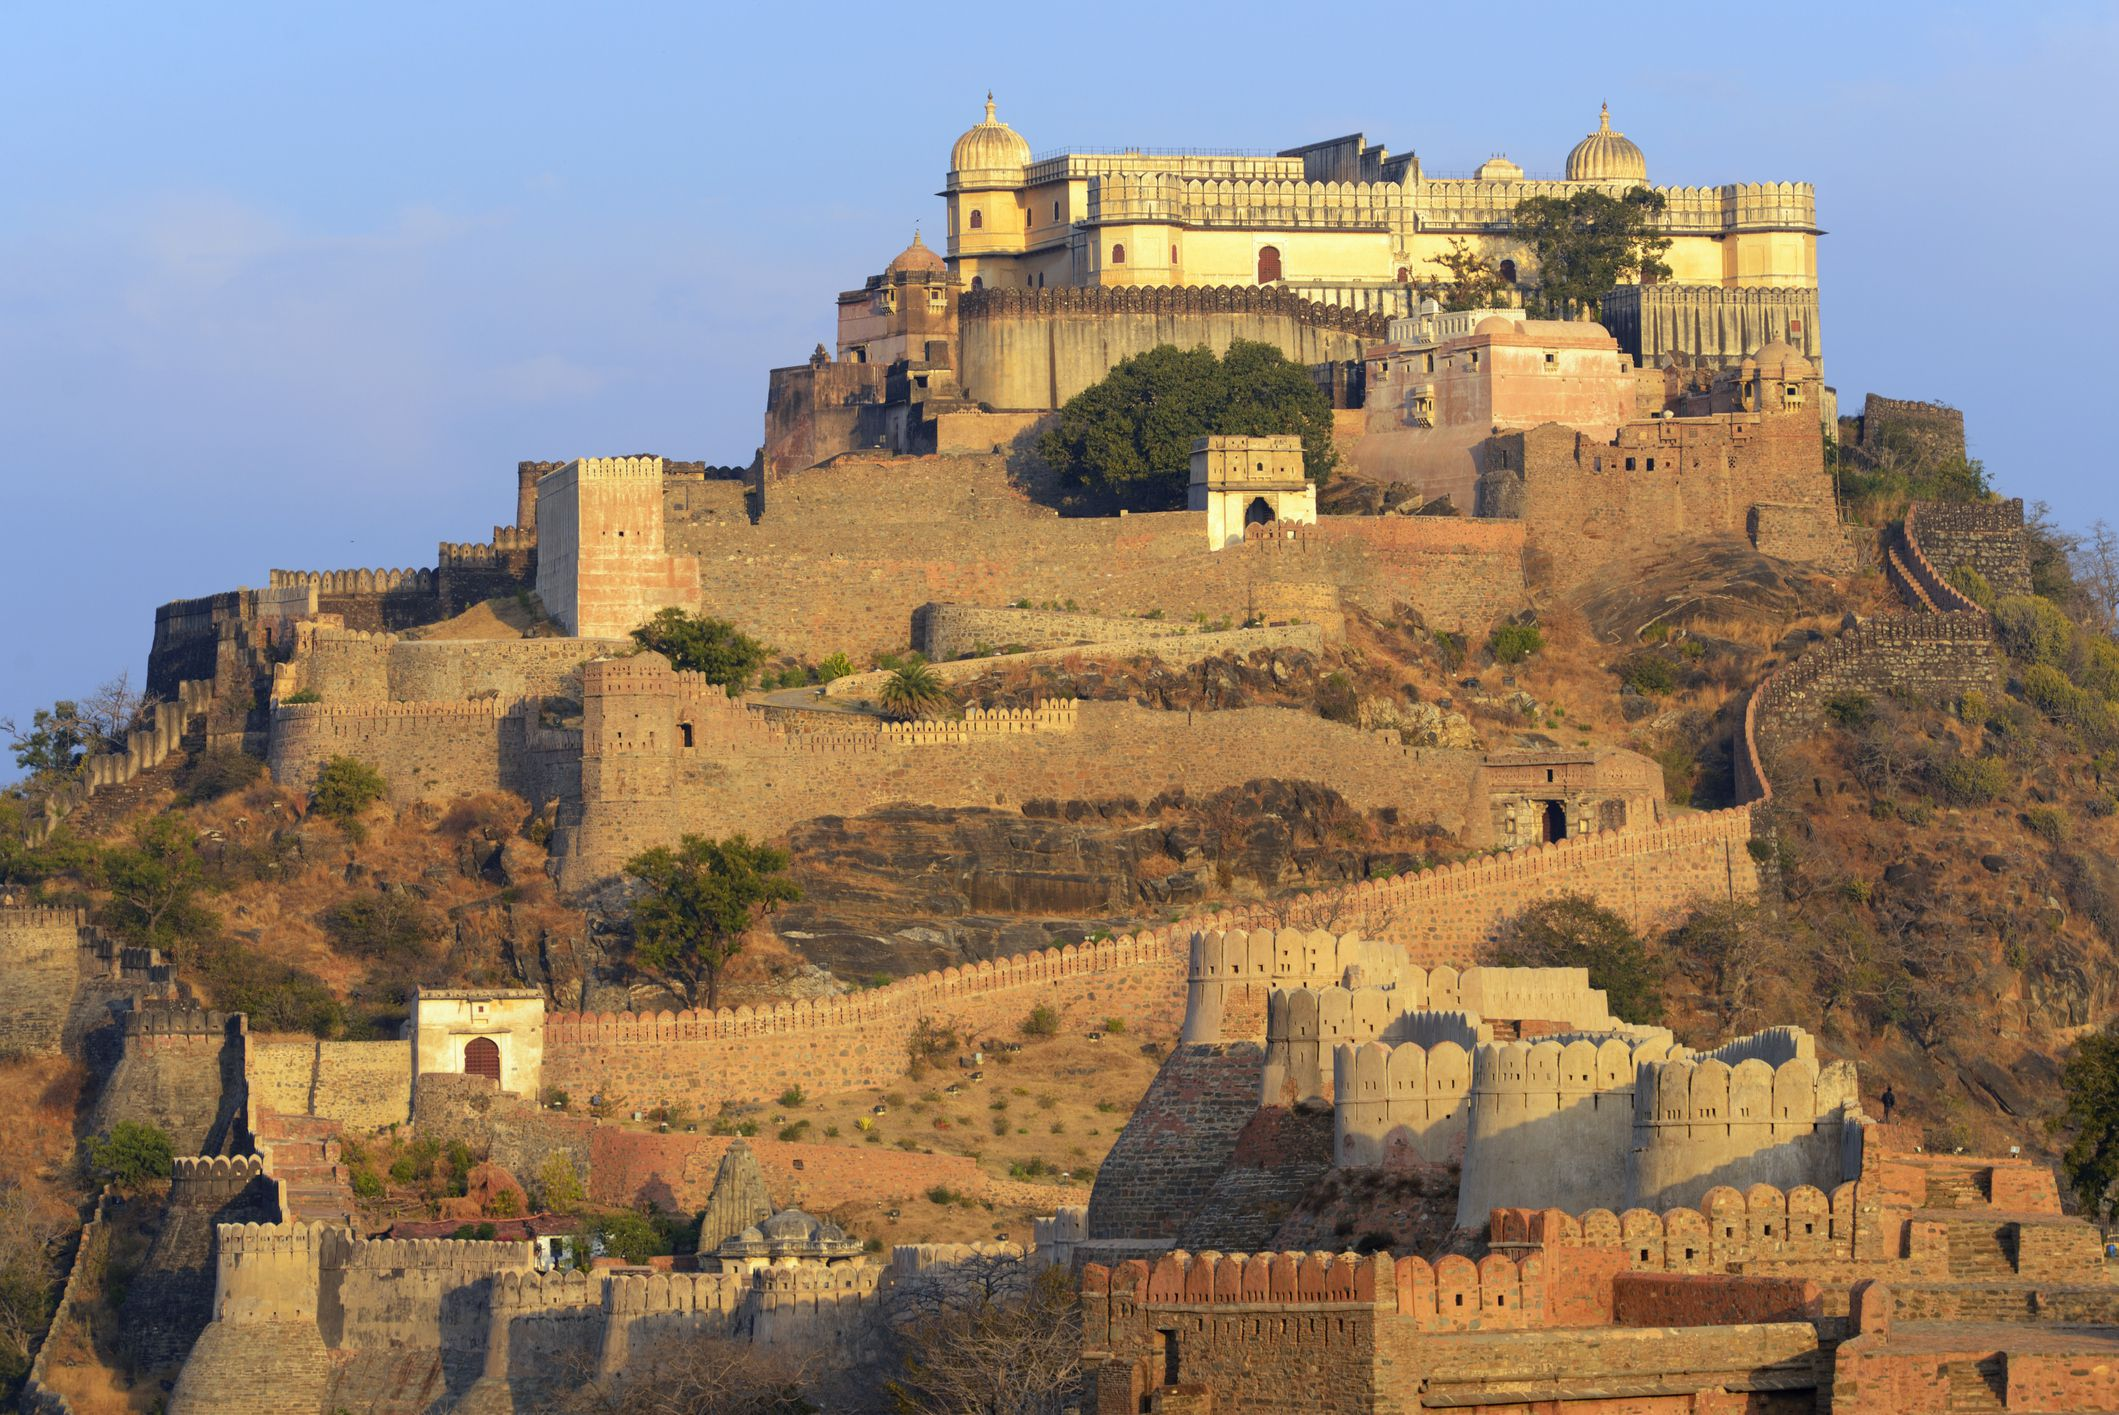 Planning A Road Trip >> Kumbhalgarh Fort in Rajasthan: The Complete Guide